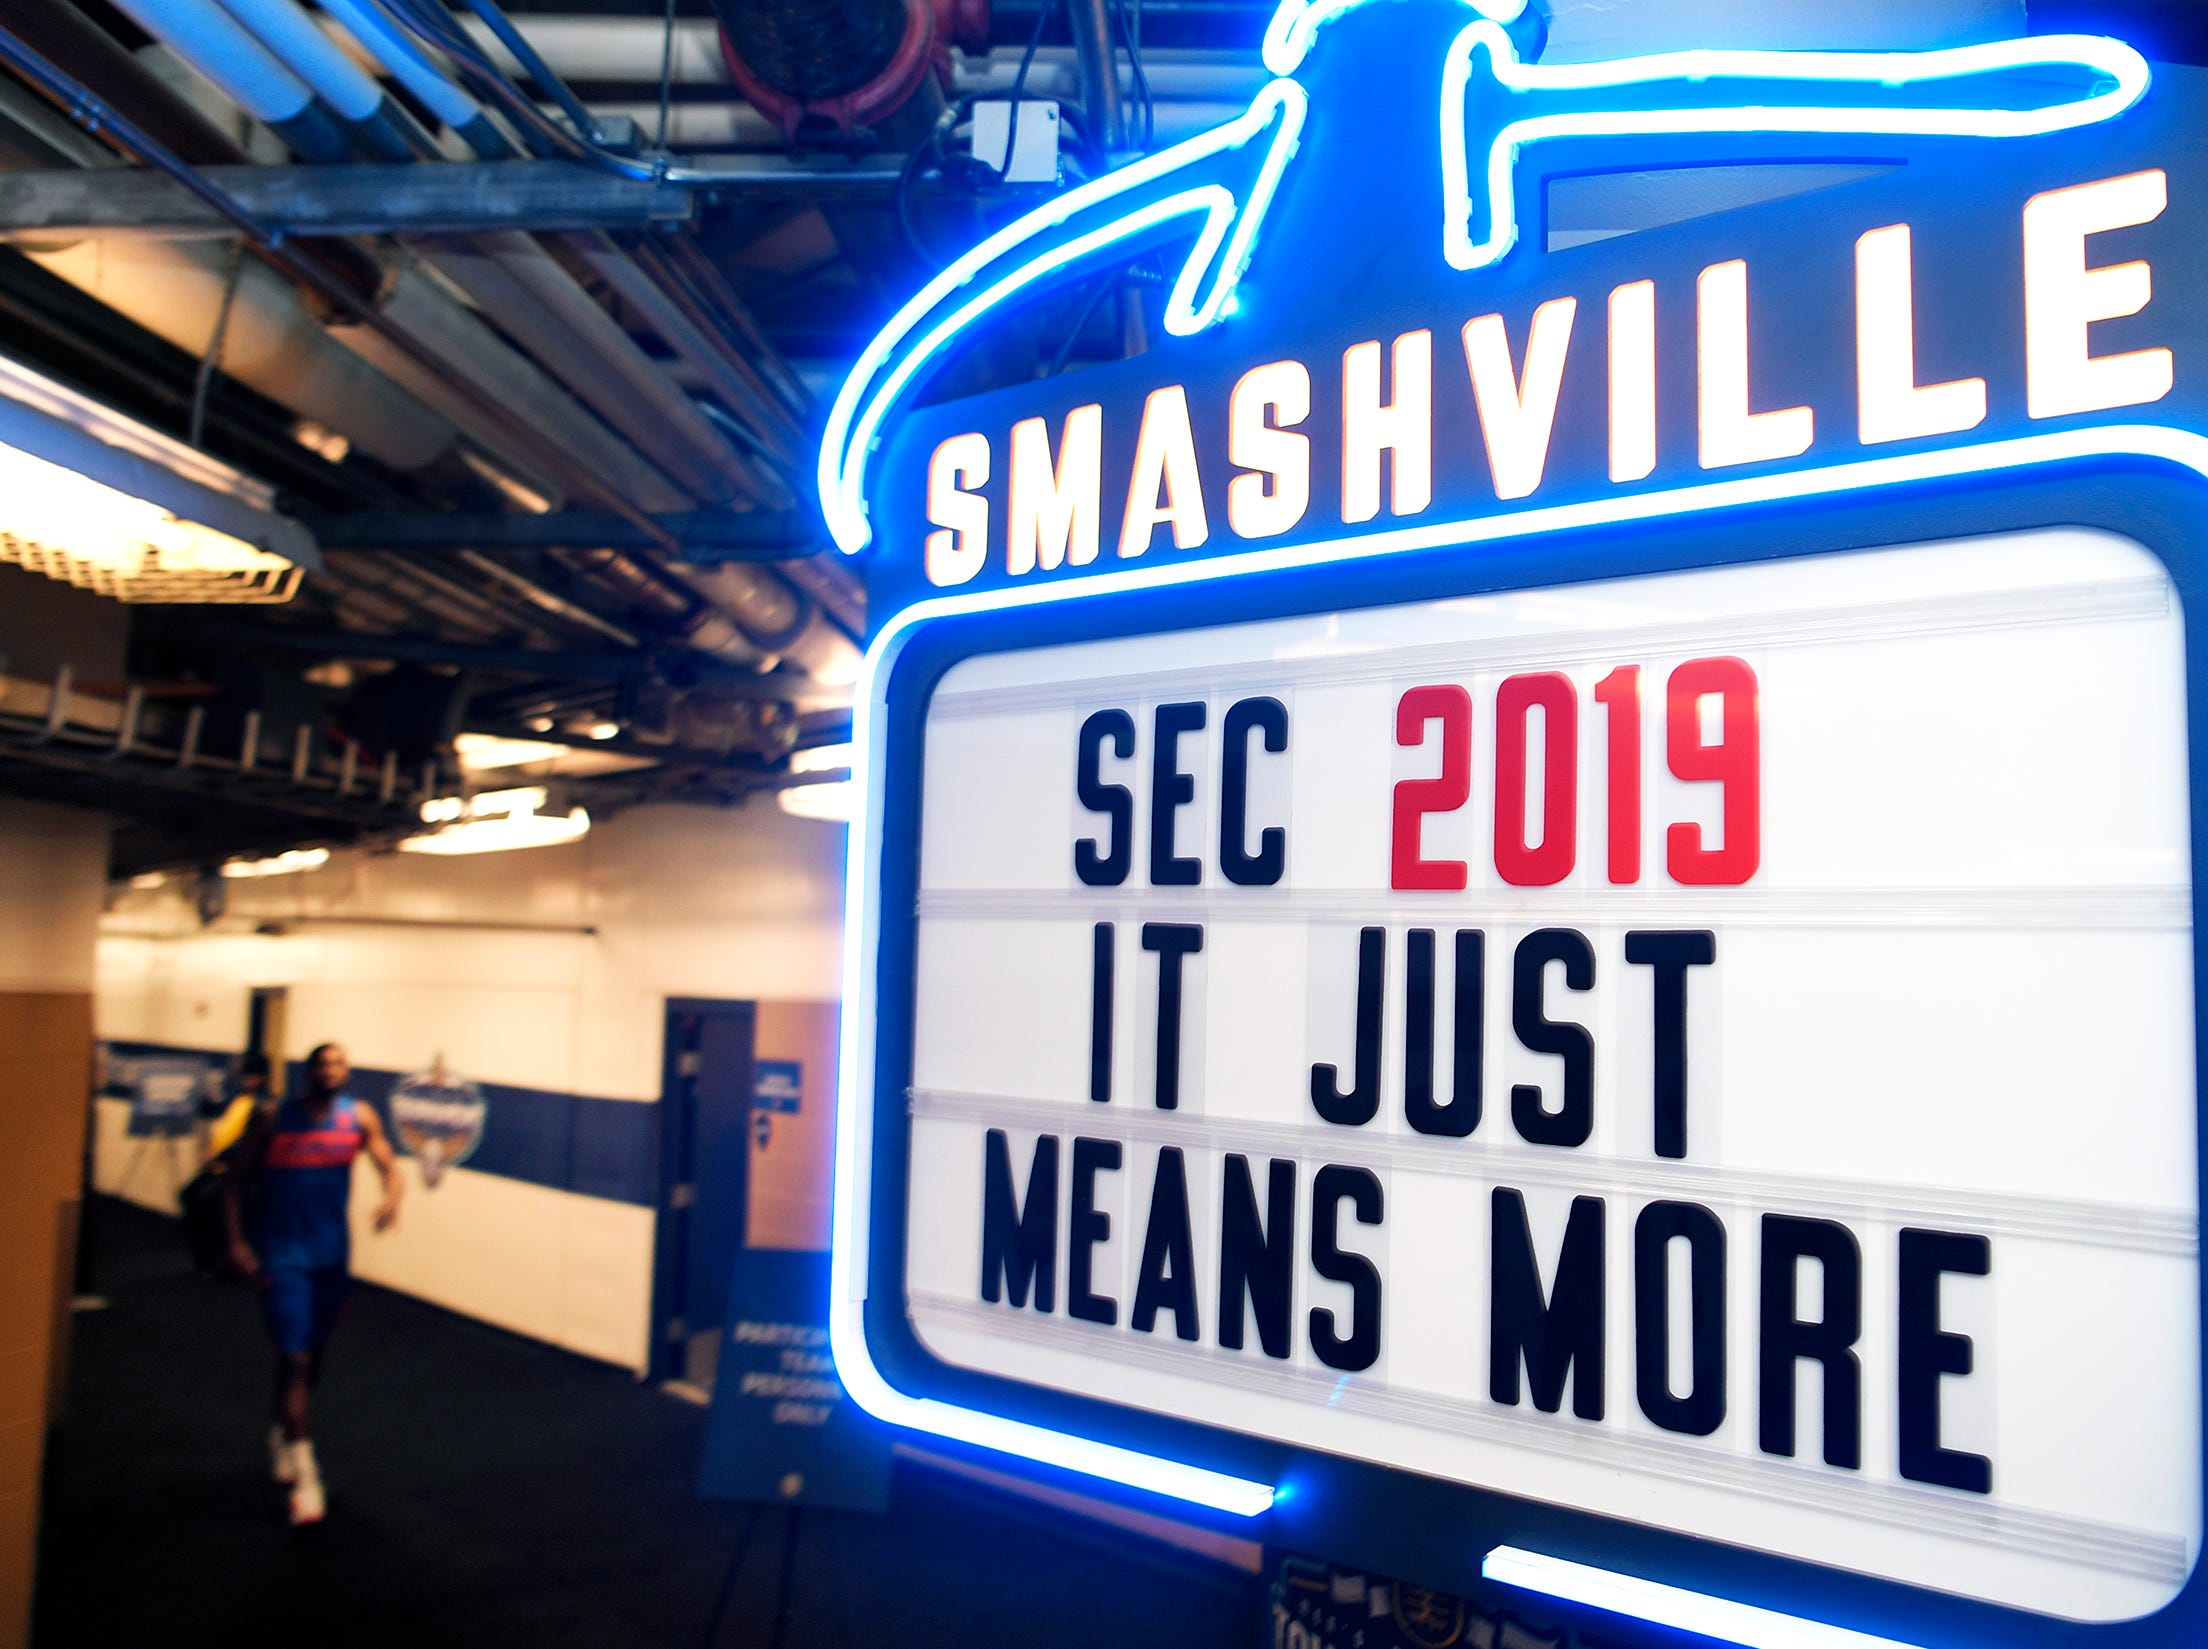 This neon sign is posted near the team locker rooms inside Bridgestone Arena at the 2019 SEC Men's Basketball Tournament in Nashville on Wednesday, March 13, 2019.